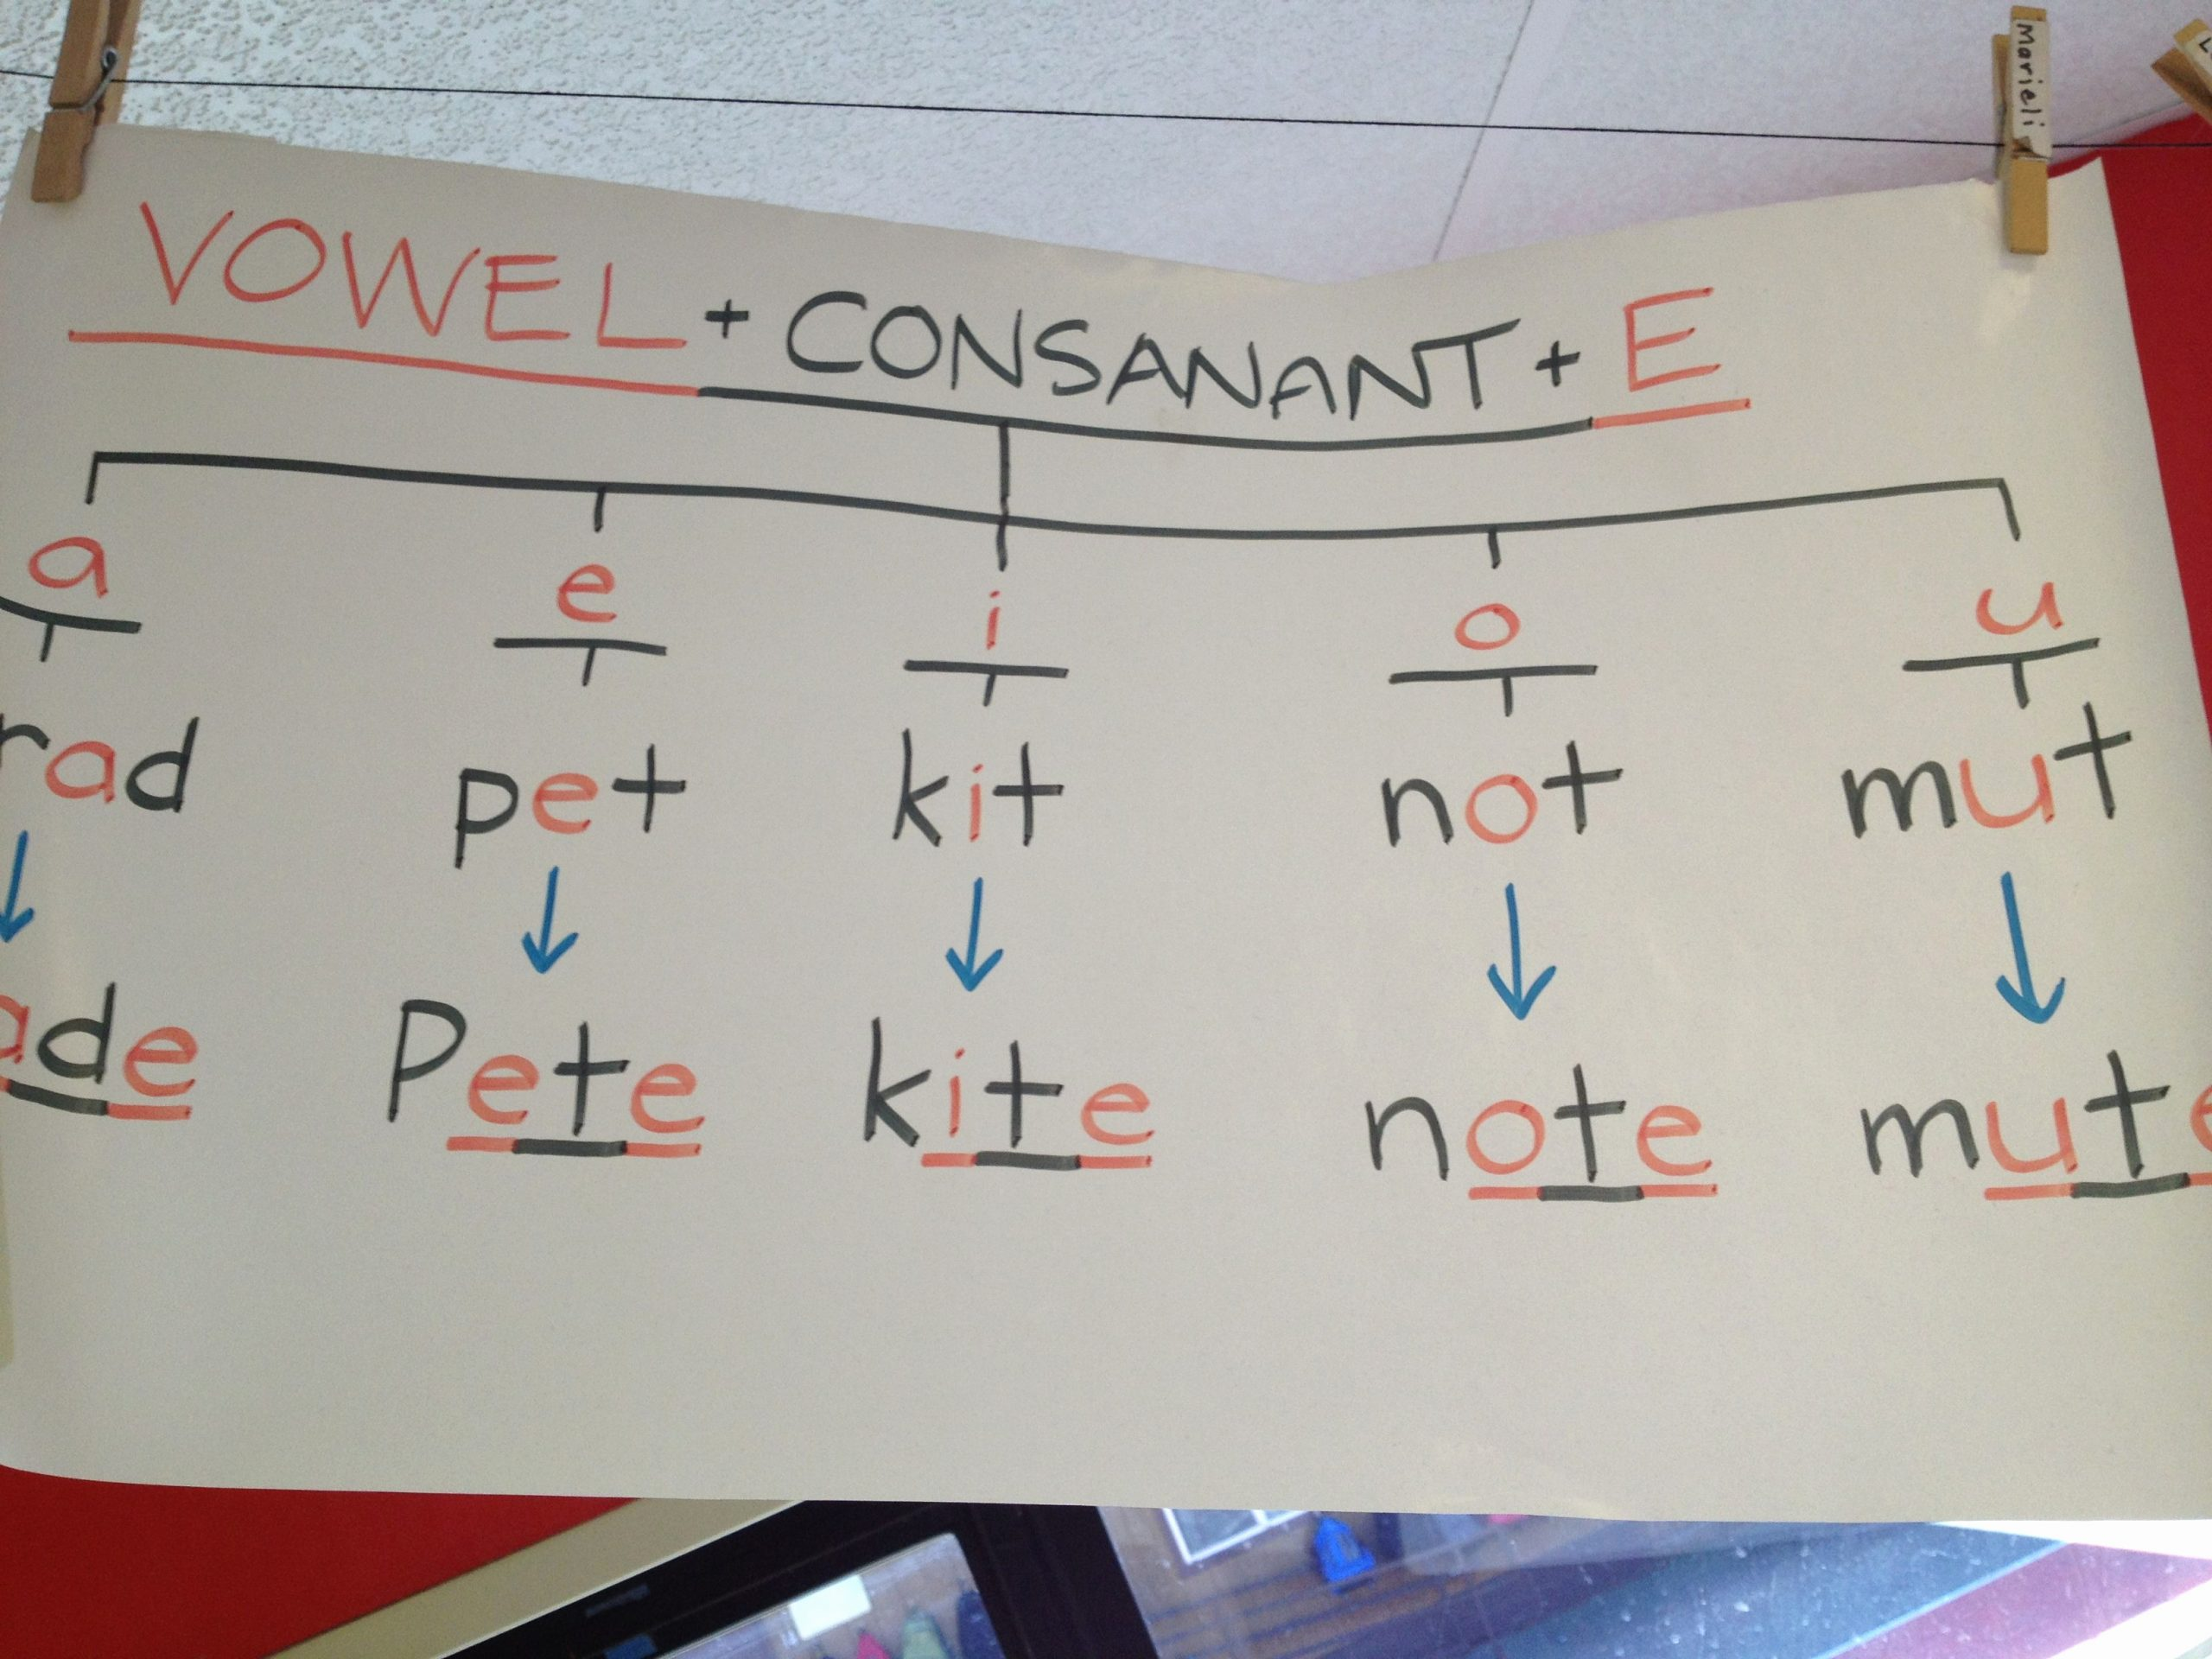 Vowel Consonant E Worksheets Inspirational Vowel Consonant E Consonant is Misspelled On Poster